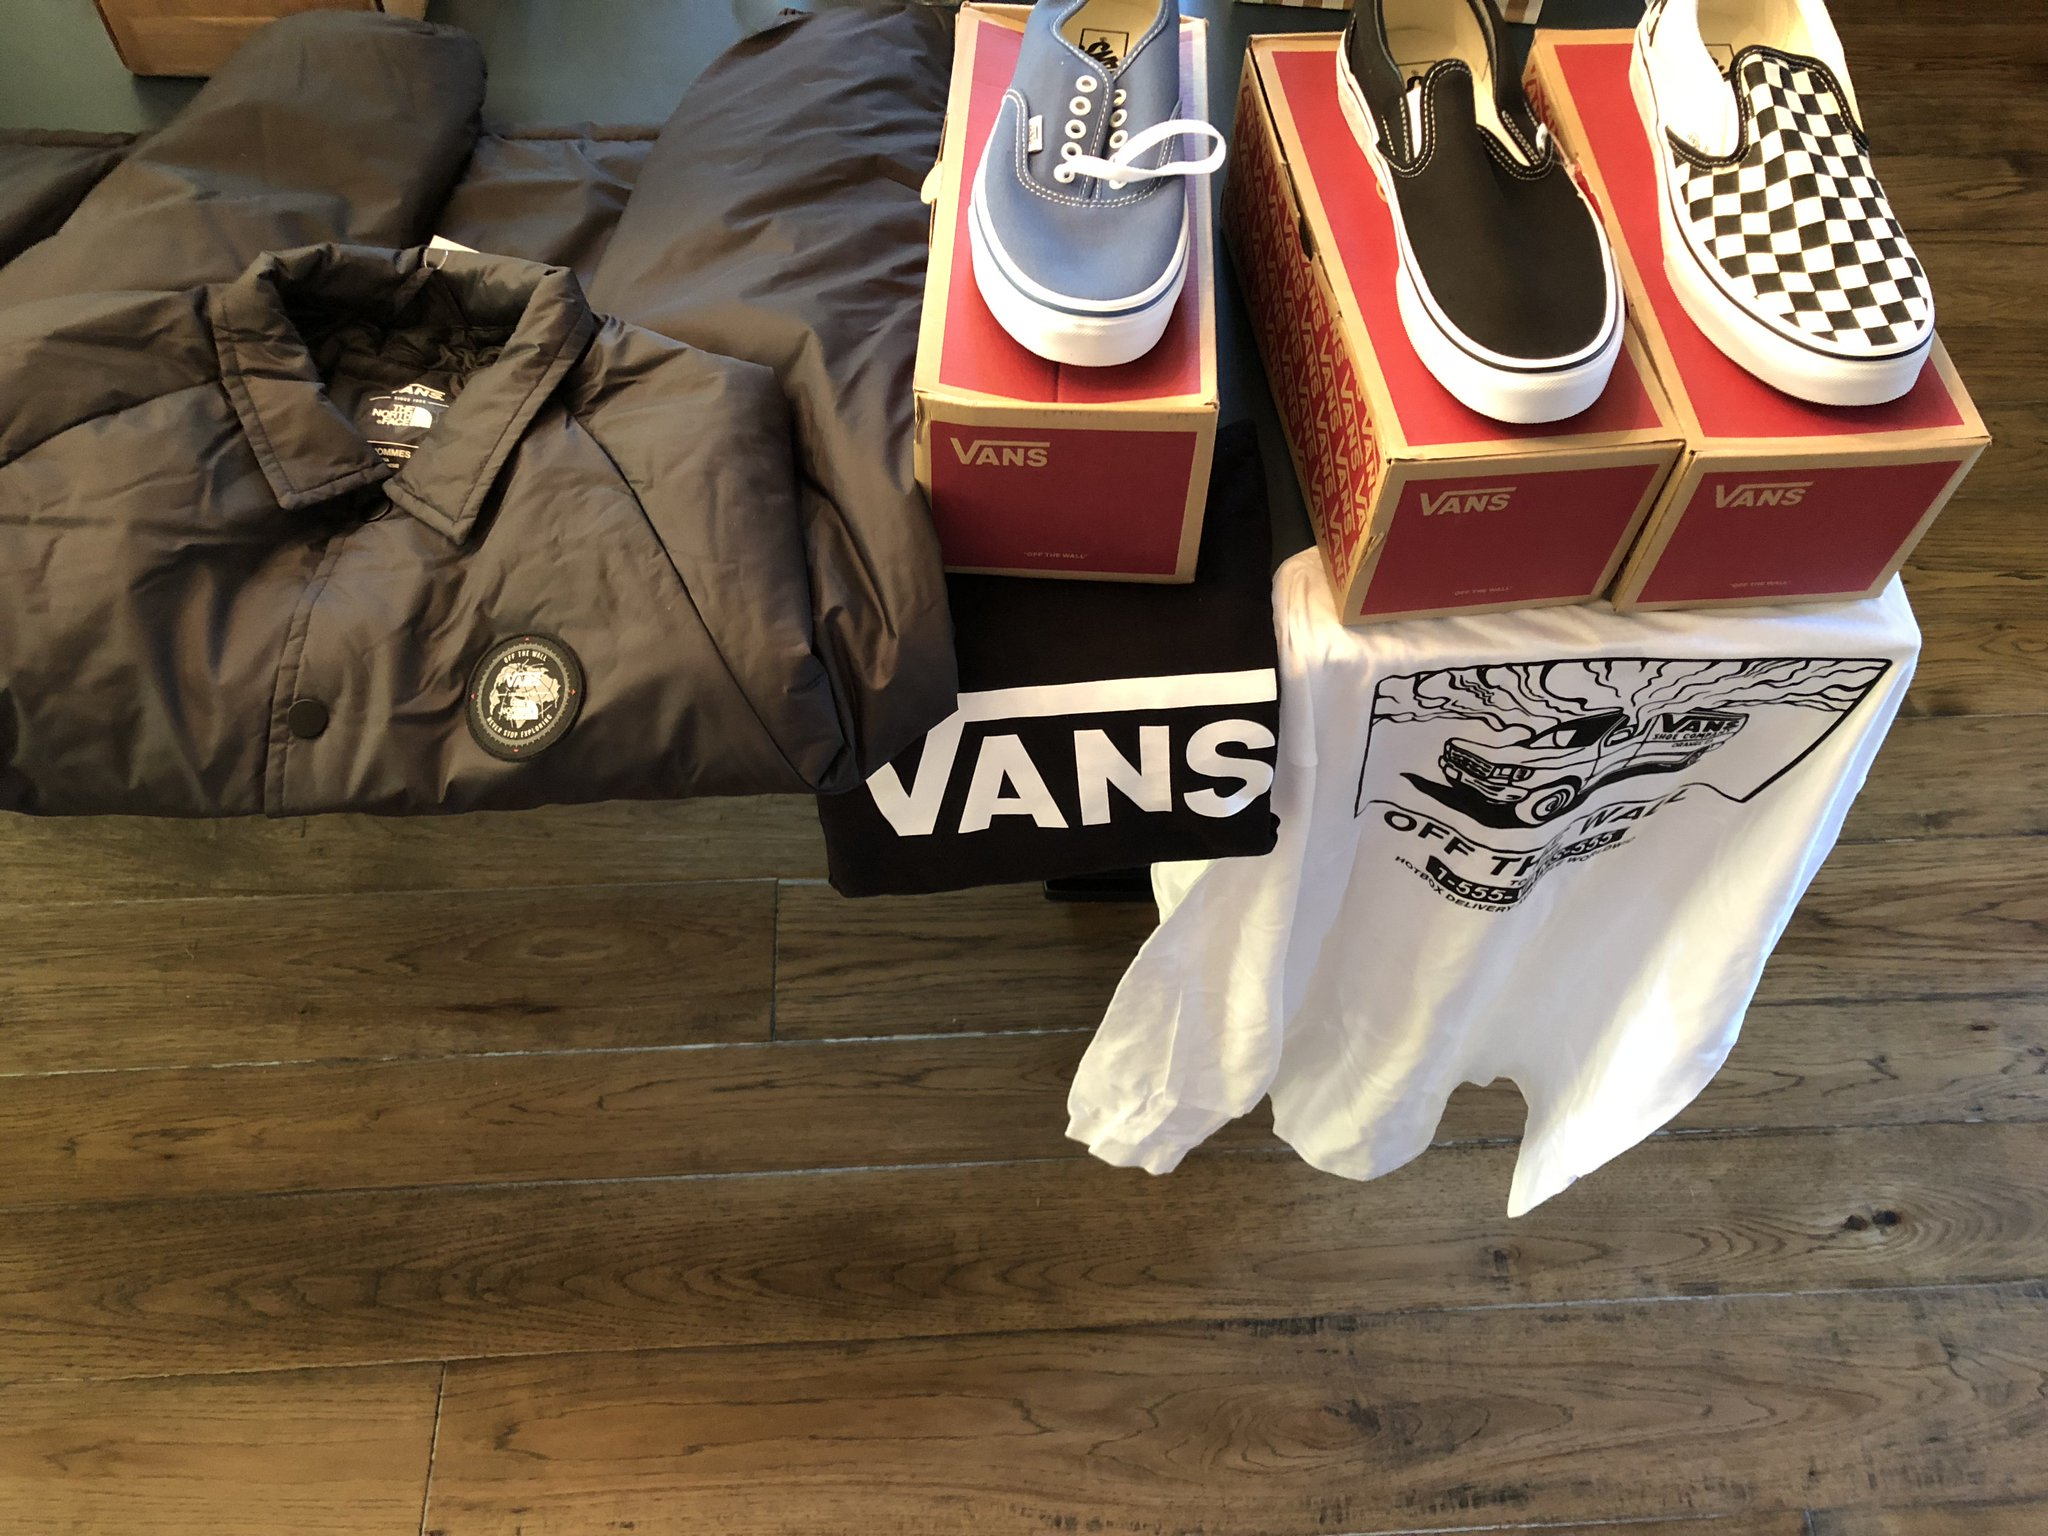 thank you for the resuply @VANS_66 ゚ᄂル゚マᄑ゚ᄂル゚マᄑ゚ᄂル゚マᄑ゚ᄂル゚マᄑ゚ᄂル゚マᄑ゚ᄂル゚マᄑ https://t.co/oF2fmaxvOv